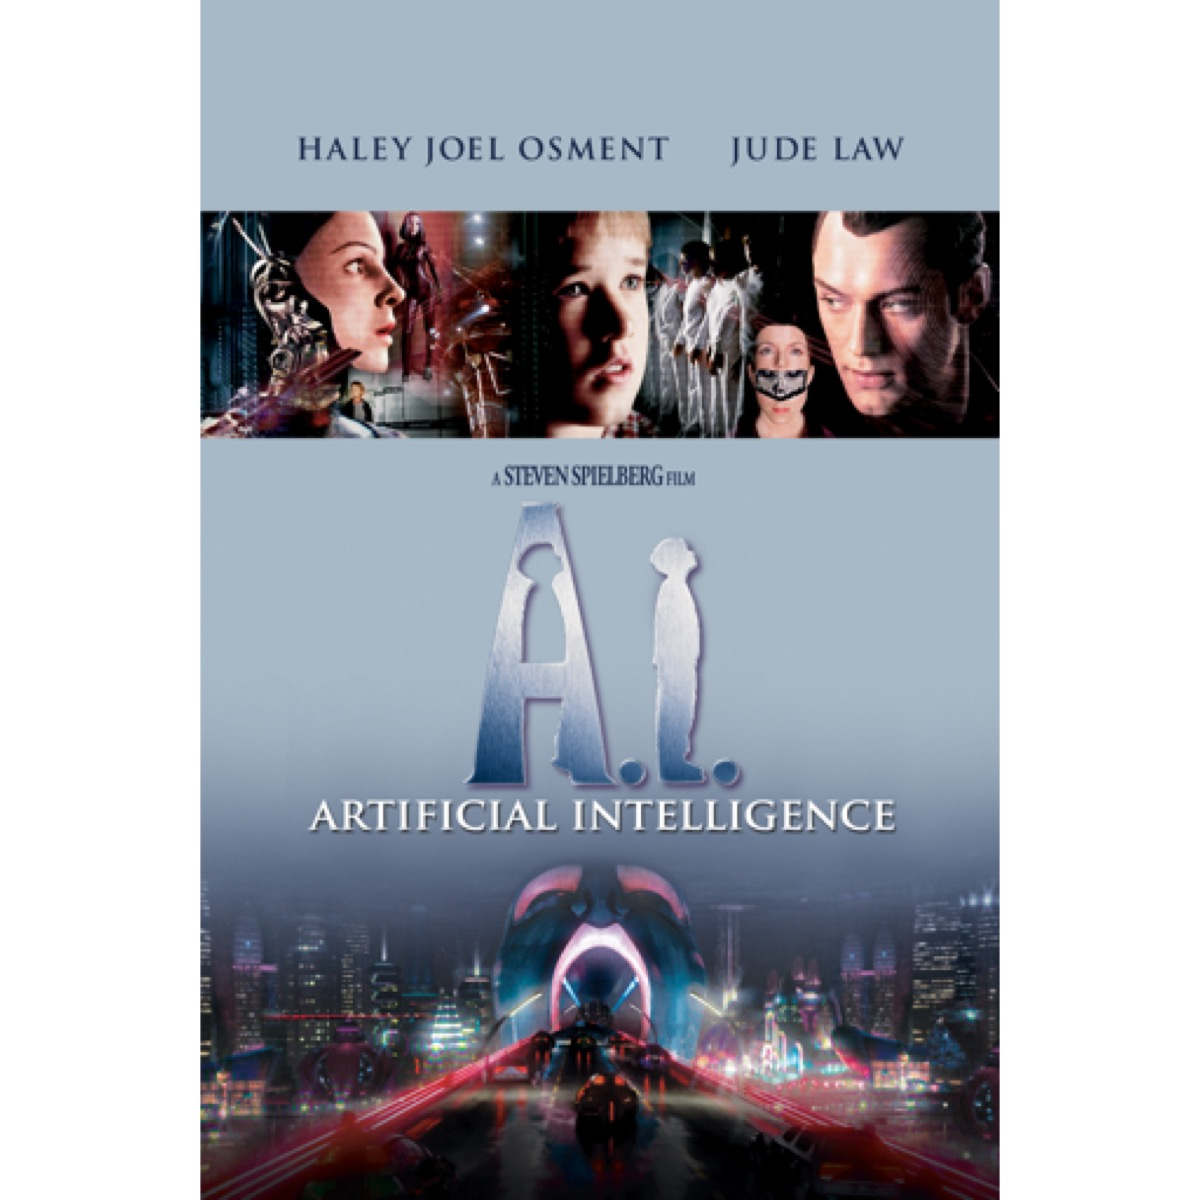 A.I. Artificial Intelligence, 47% off, ↘️ $7.99!